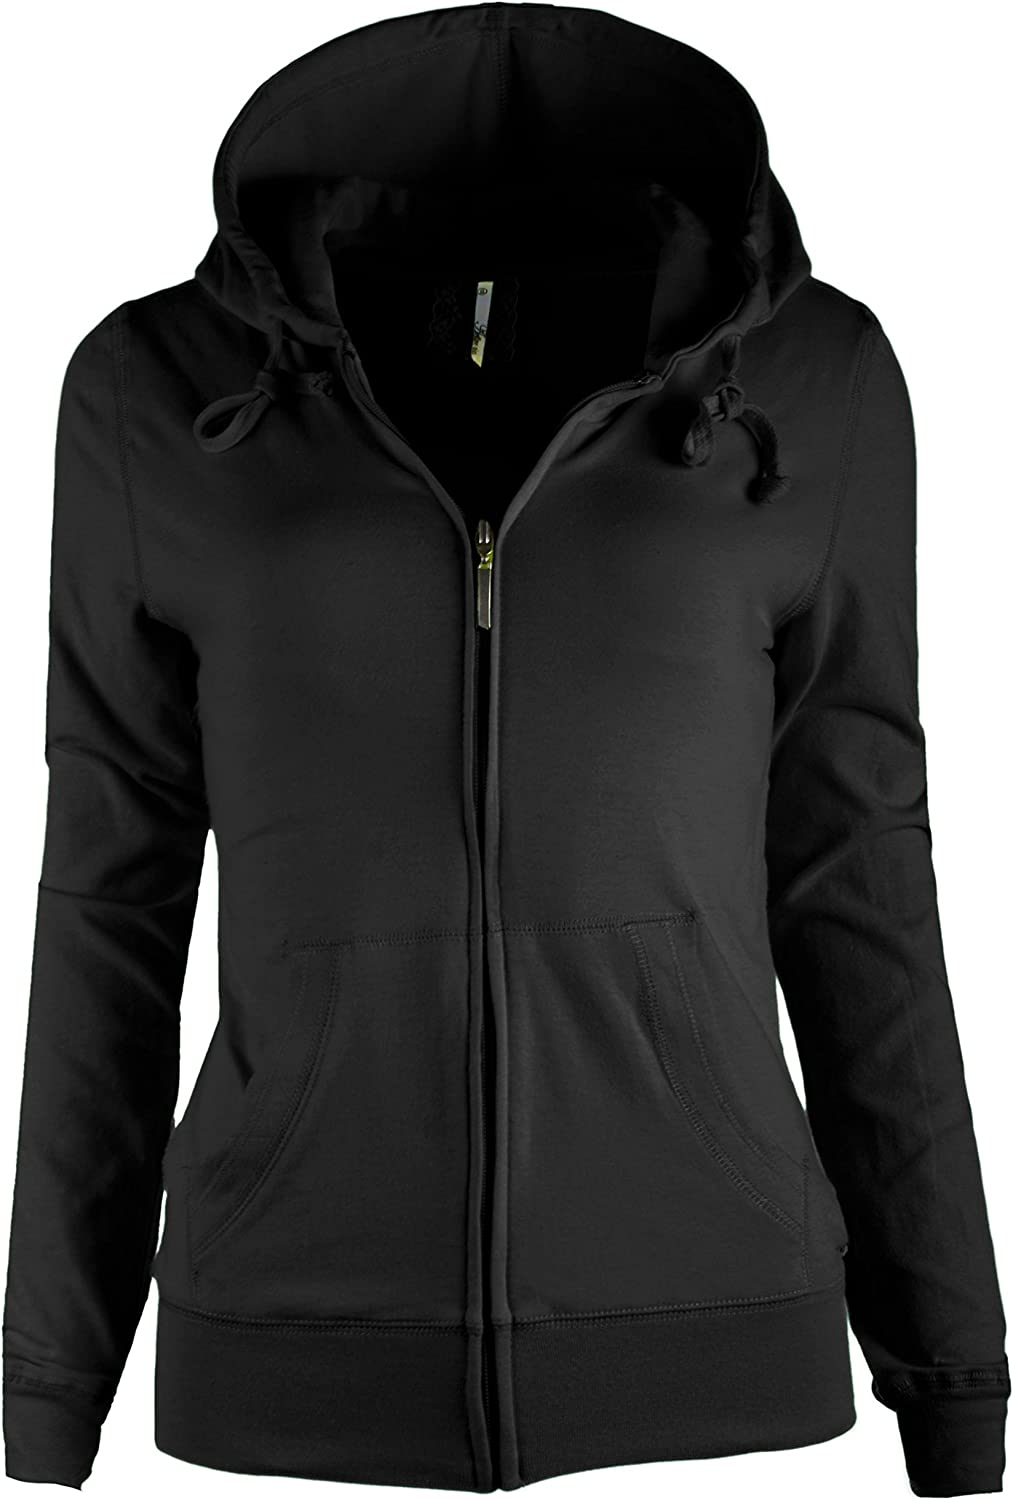 Tl Women S Knit Stretch Zipper Solid Casual Zip Up Hoodie Jackets In Colors At Amazon Women S Clothing Store